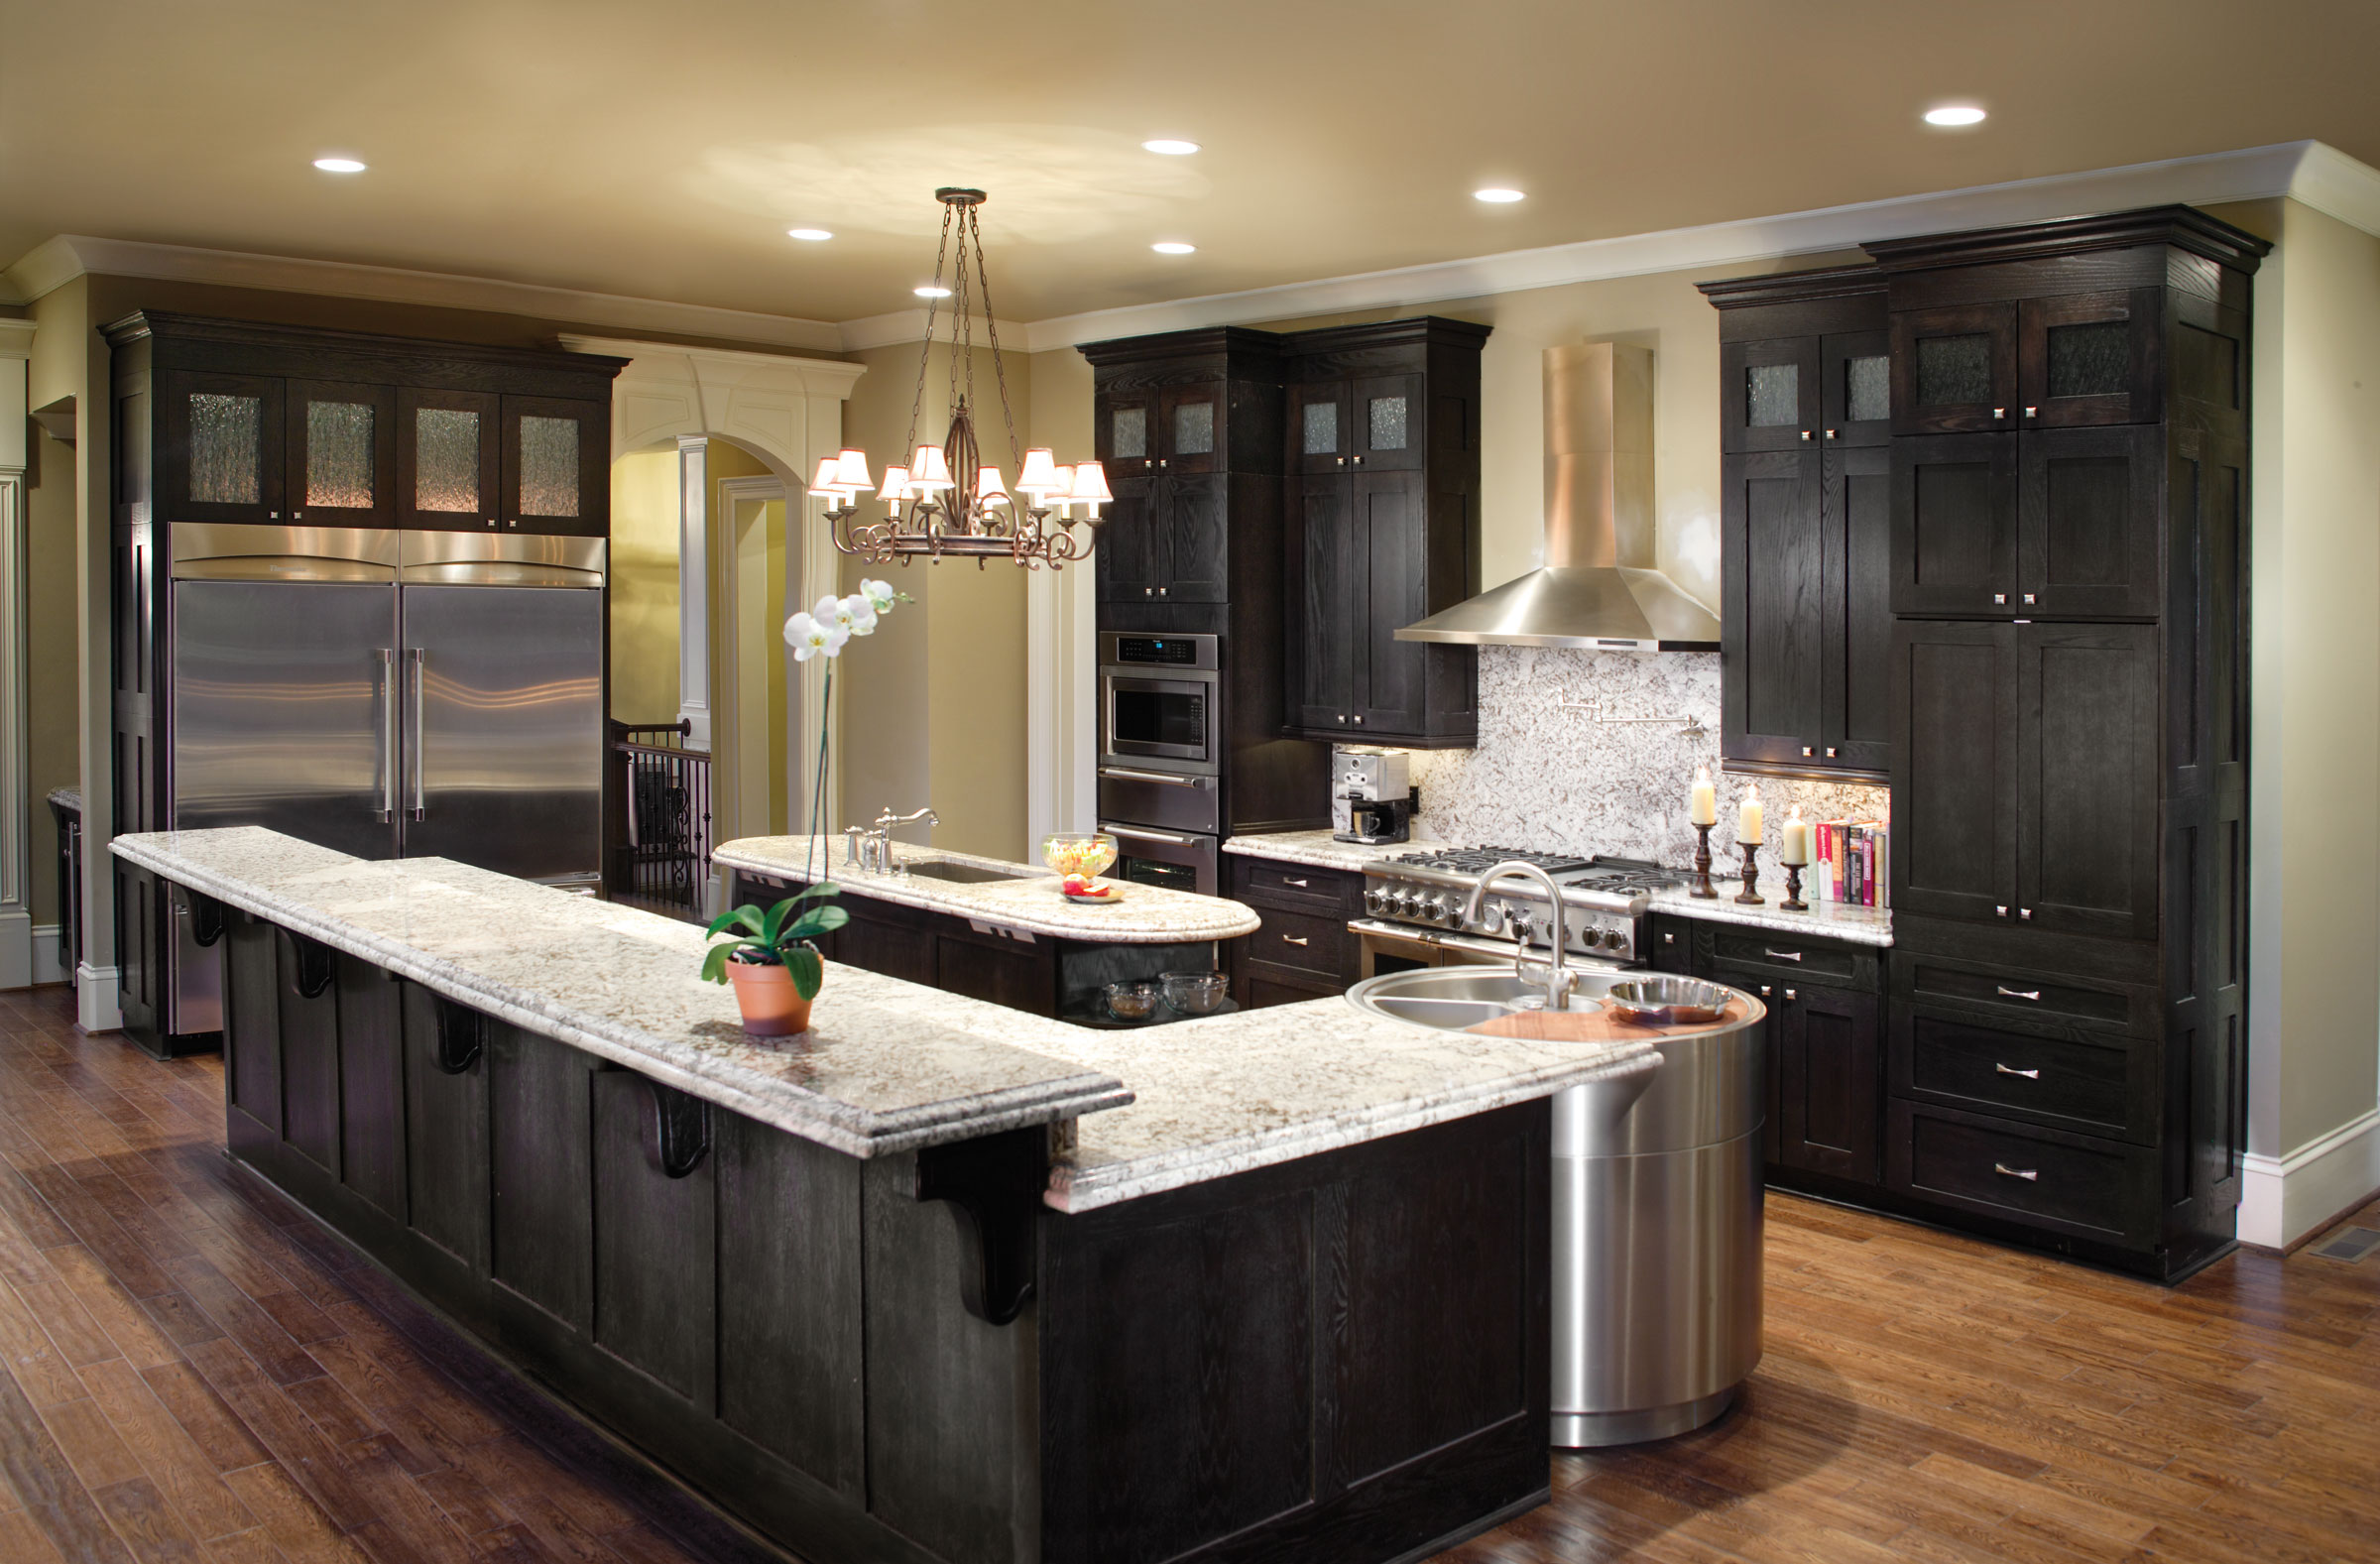 Interior Kitchen Cabinets Phoenix custom kitchen bathroom cabinets company in phoenix az cabinet maker